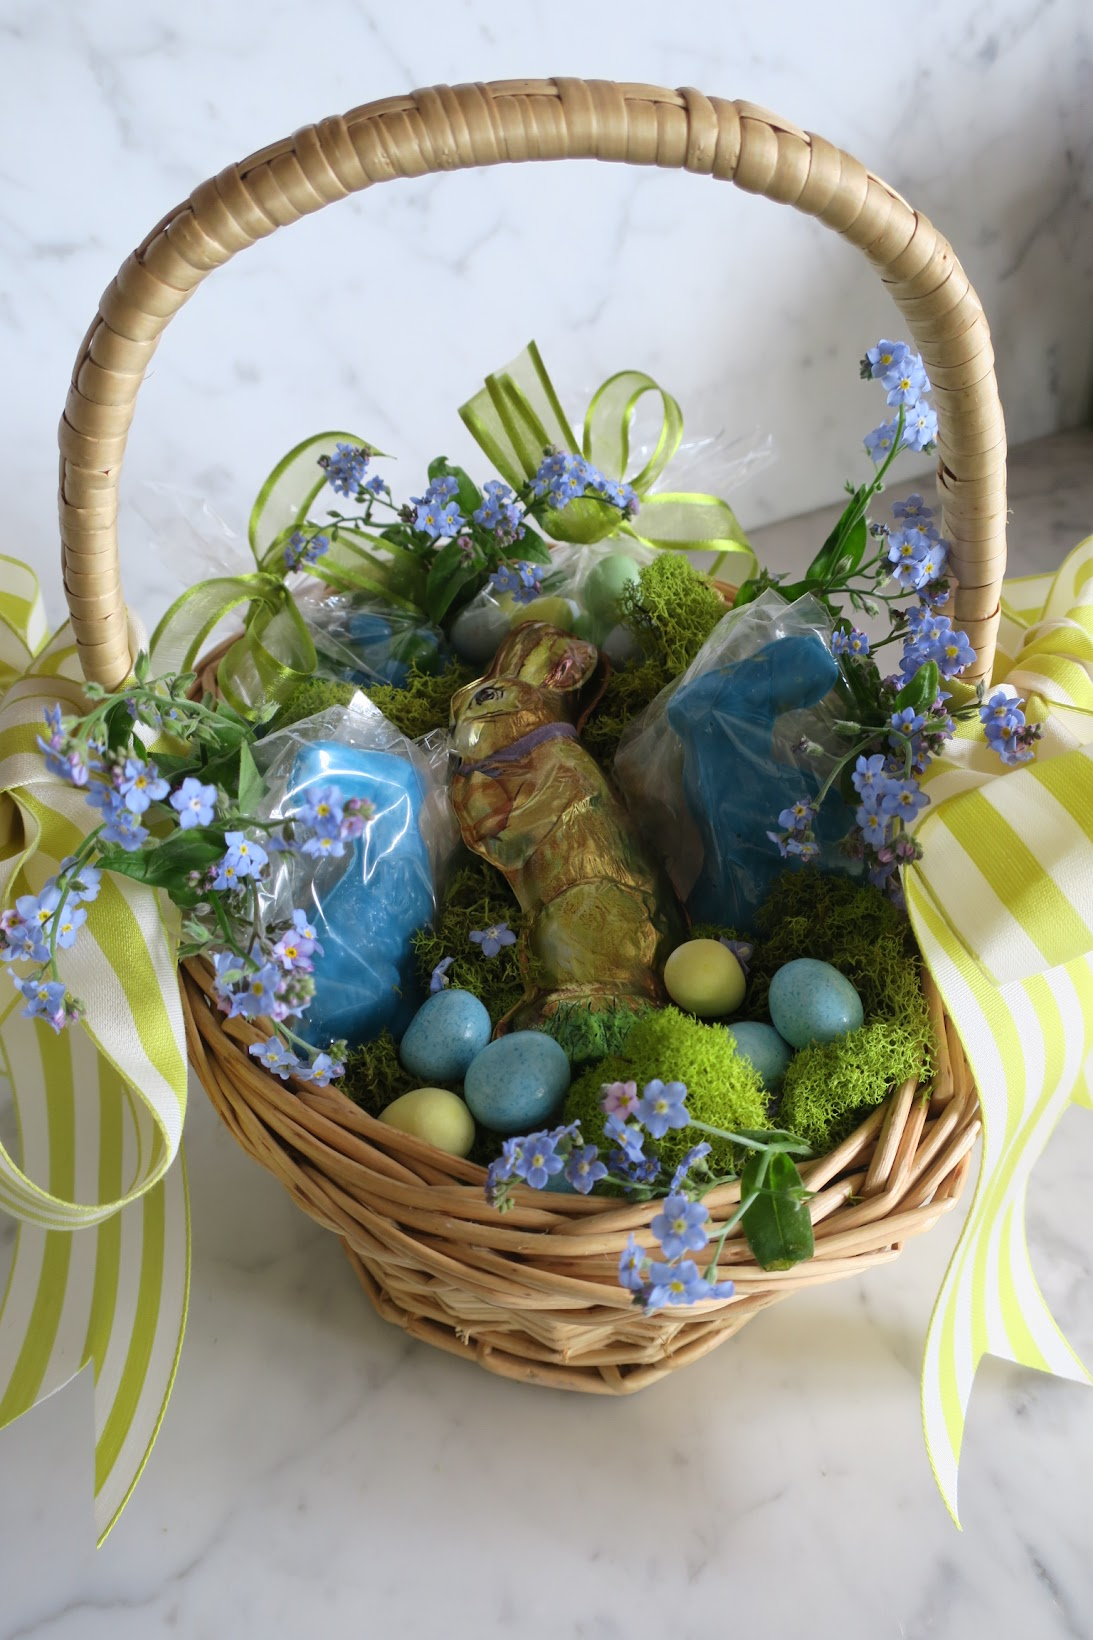 Chronica Domus: A Basket For Easter